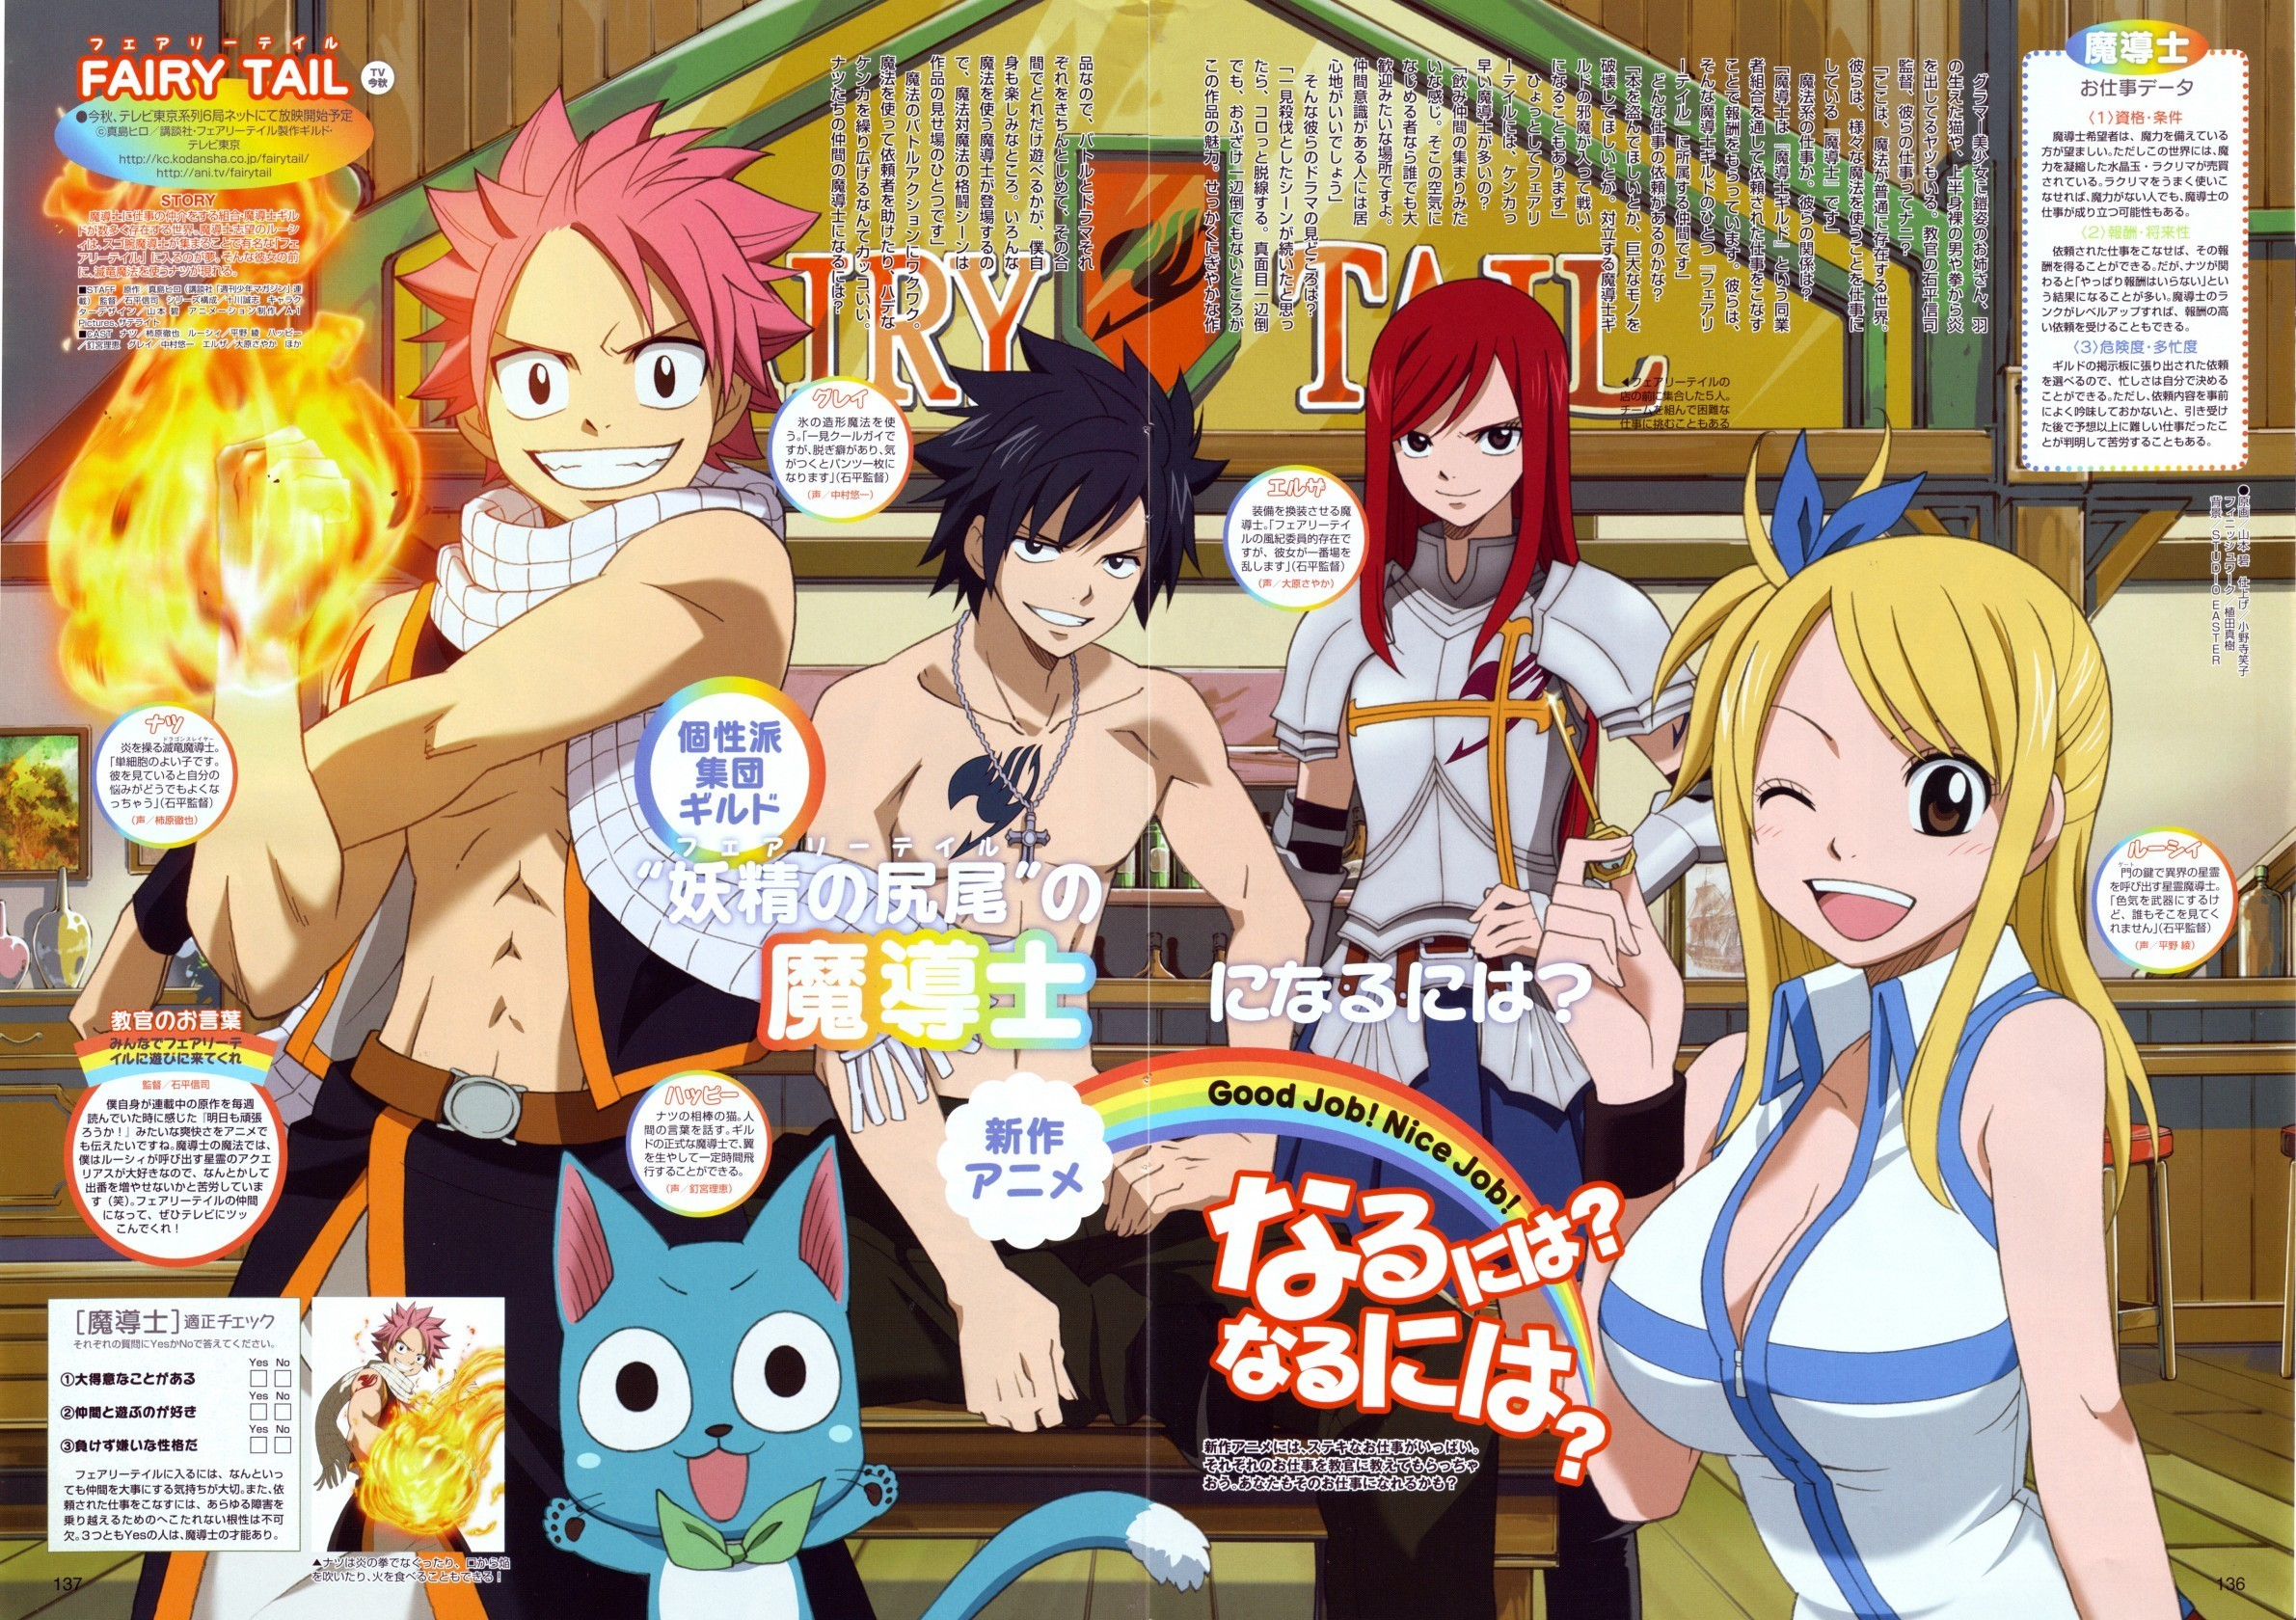 -http://images2.fanpop.com/images/photos/8200000/Fairy-Tail-fairy-tail-8274563-2381-1680.jpg